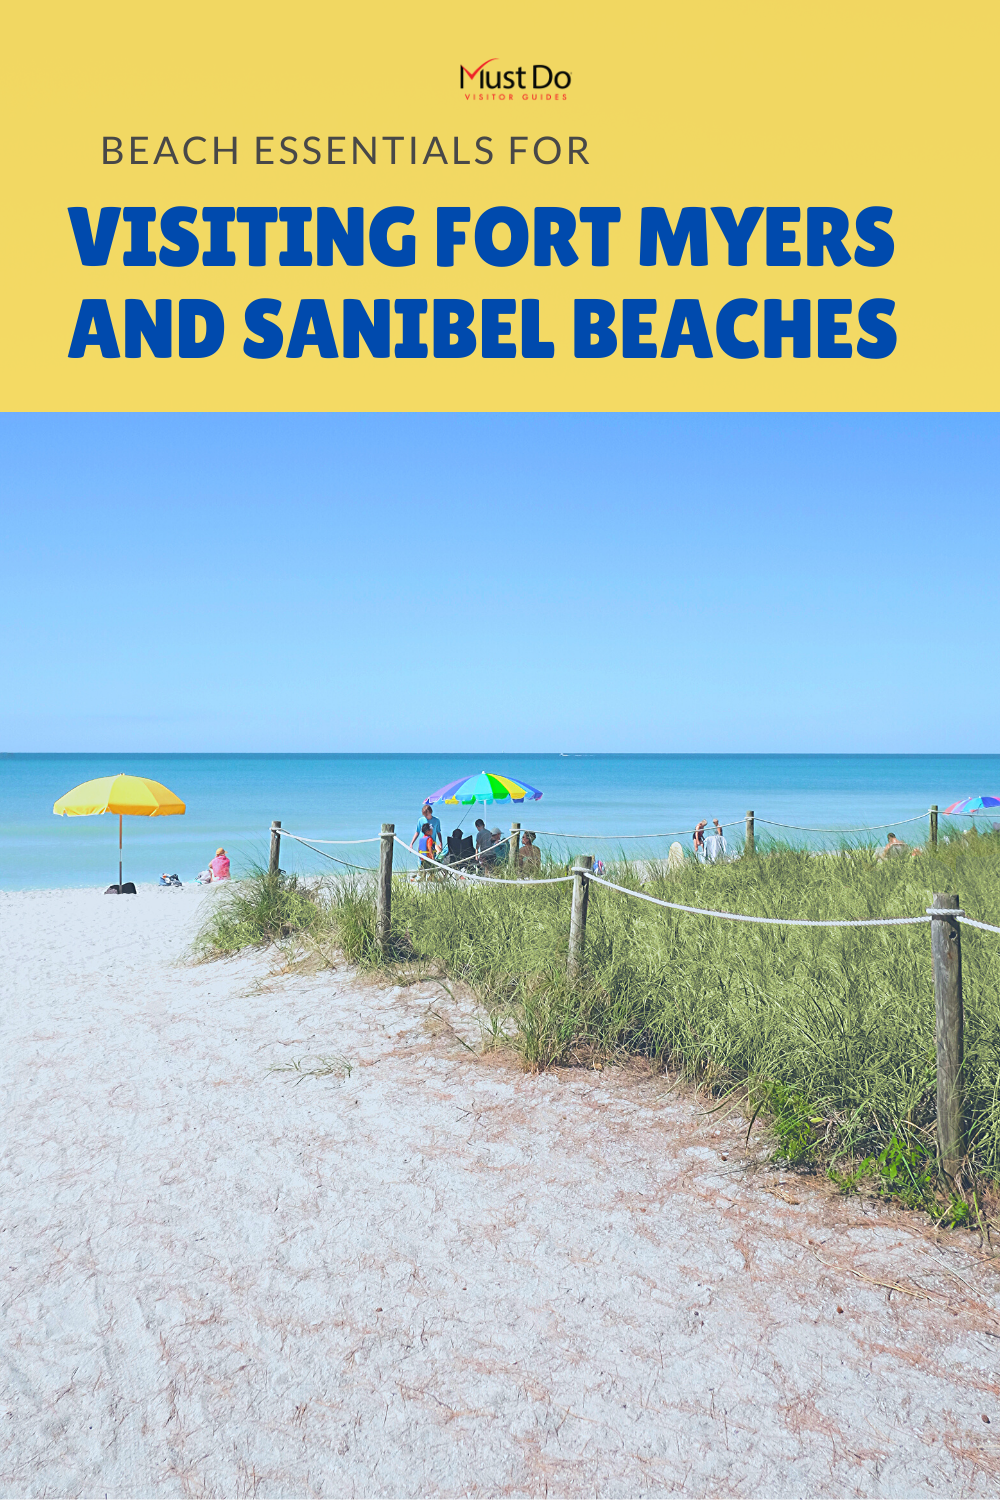 Essentials for Visiting Fort Myers and Sanibel Beaches - A list of beach essentials including the best beaches in Fort Myers and Sanibel, Florida with info about parking and amenities. Must Do Visitor Guides | MustDo.com